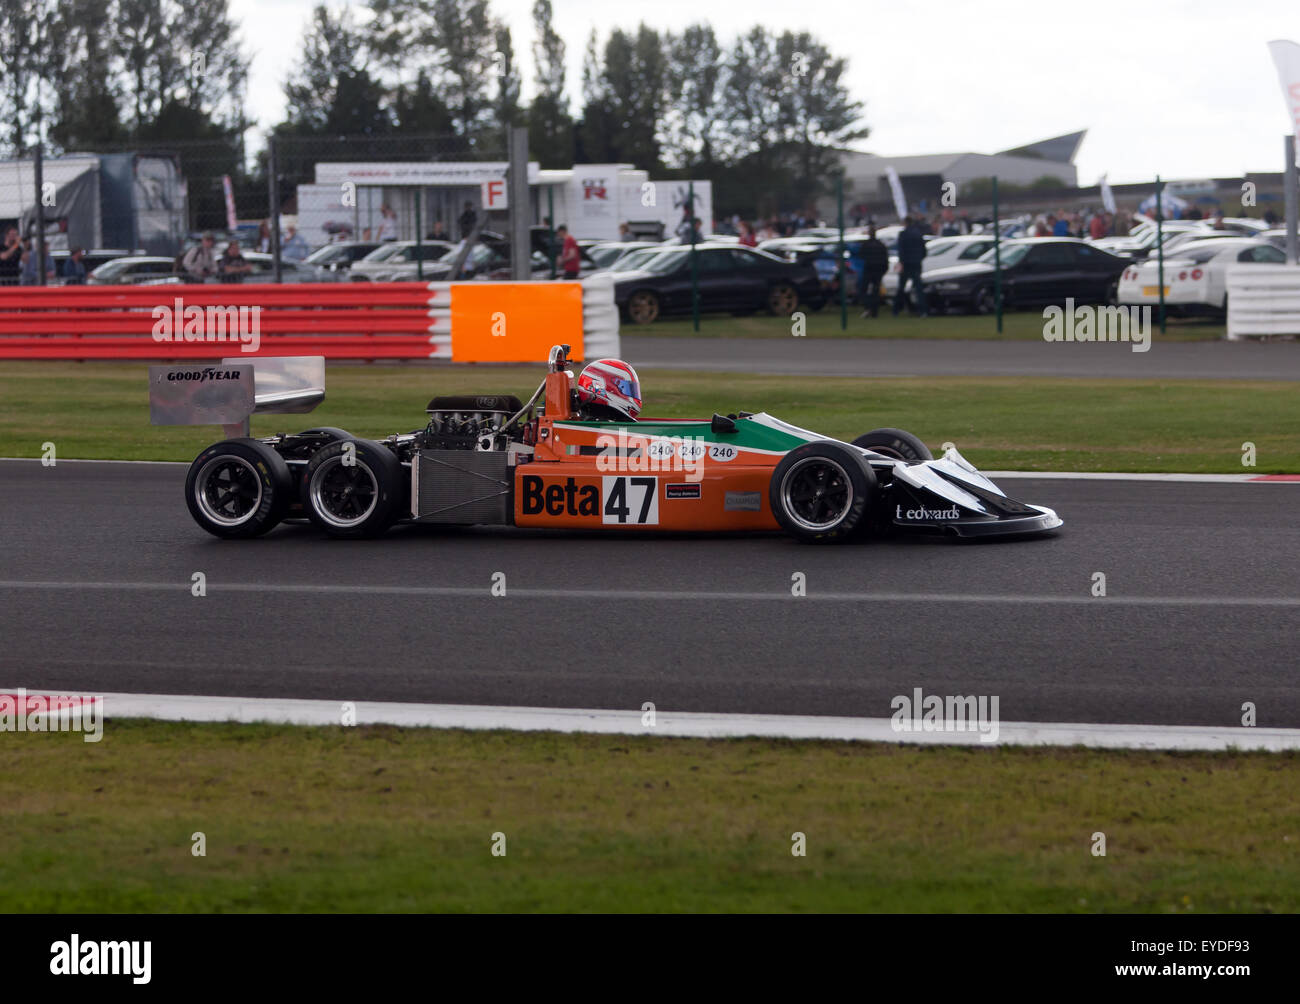 Jeremy Smith driving a 1976, six-wheeled March 2-4-0, in the FIA Masters Historic Formula One race at the Silverstone - Stock Image